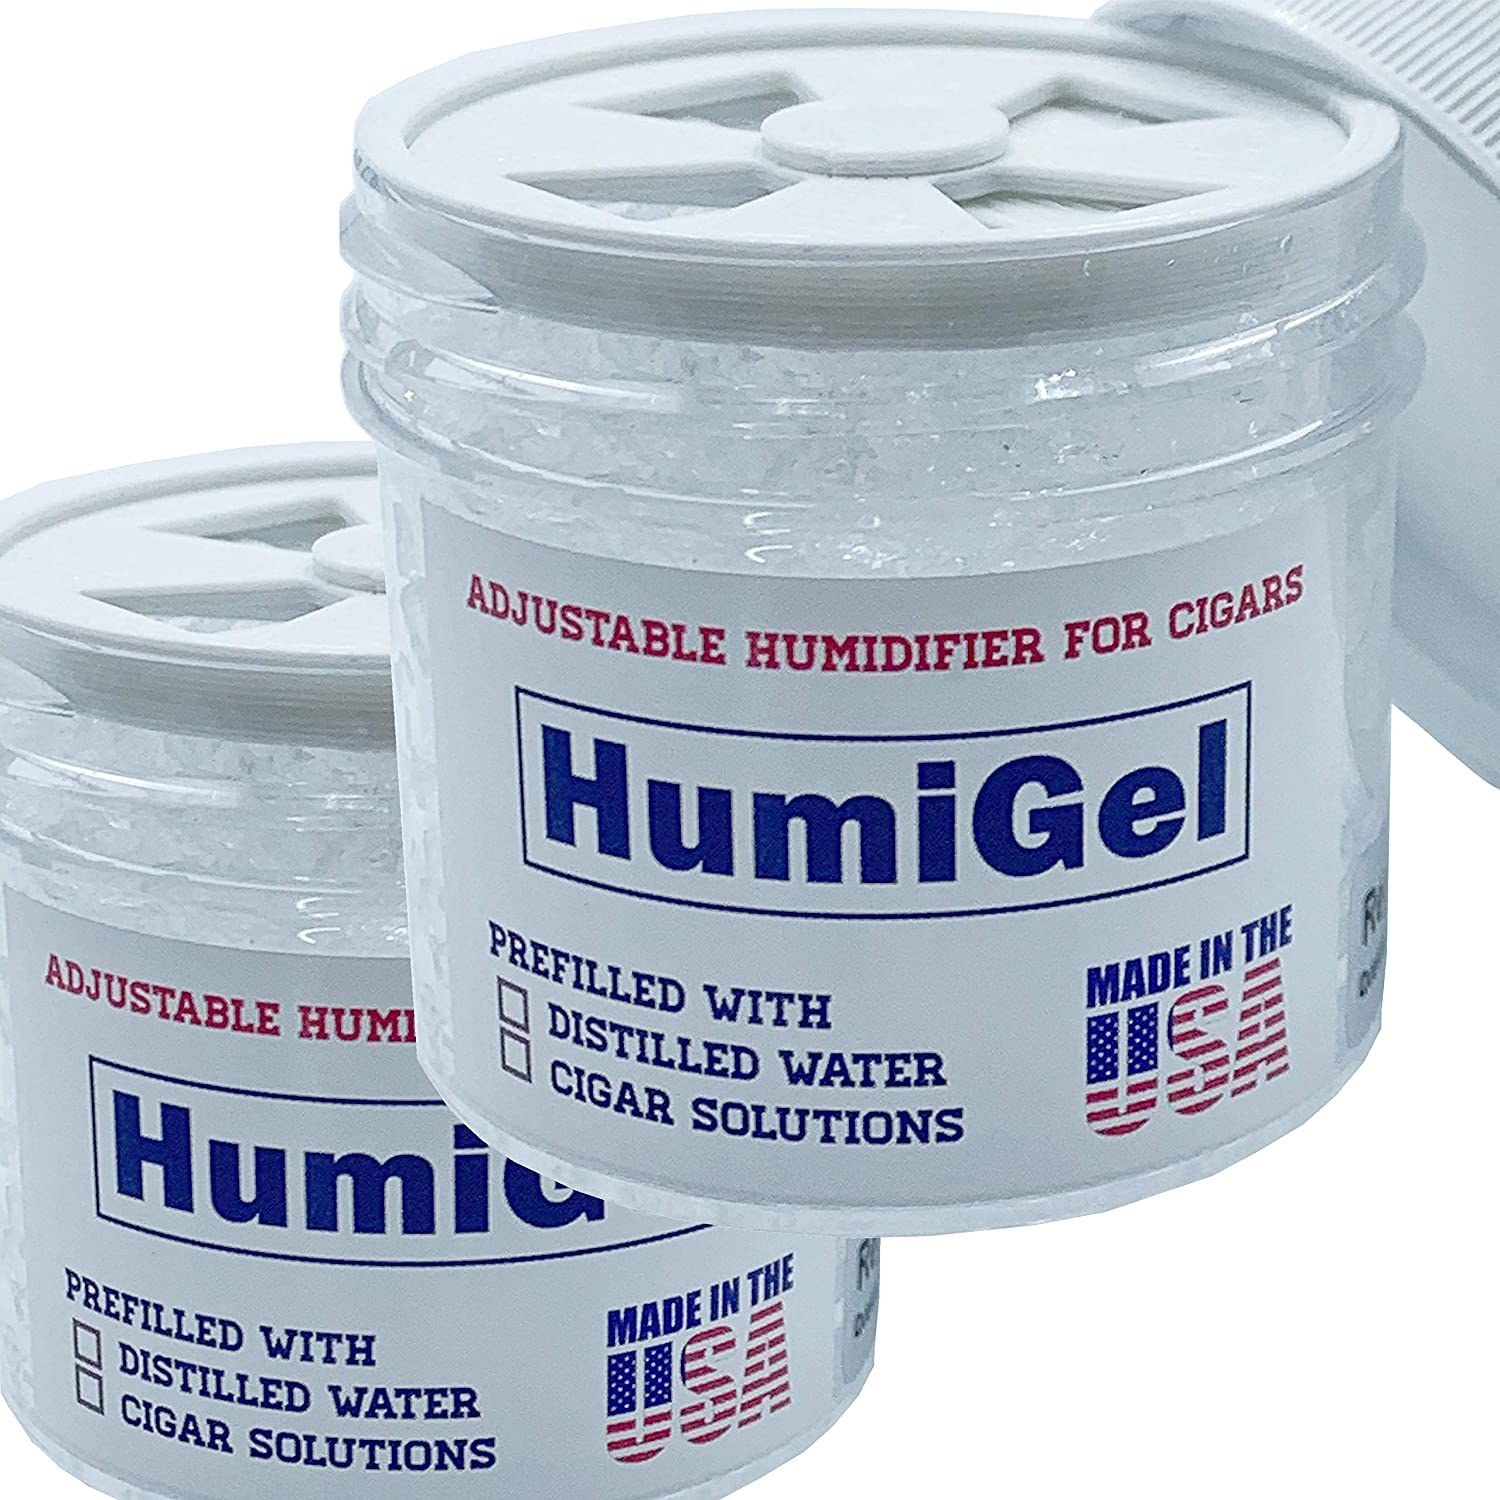 Cigar humidifiers for humidors NEW 2021 HumiGel Adjustable humidifier 65%-70% RH - 2 PACK | Humigel Crystal Gel Humidifier, 2 oz jar | Made in USA by HumiGel